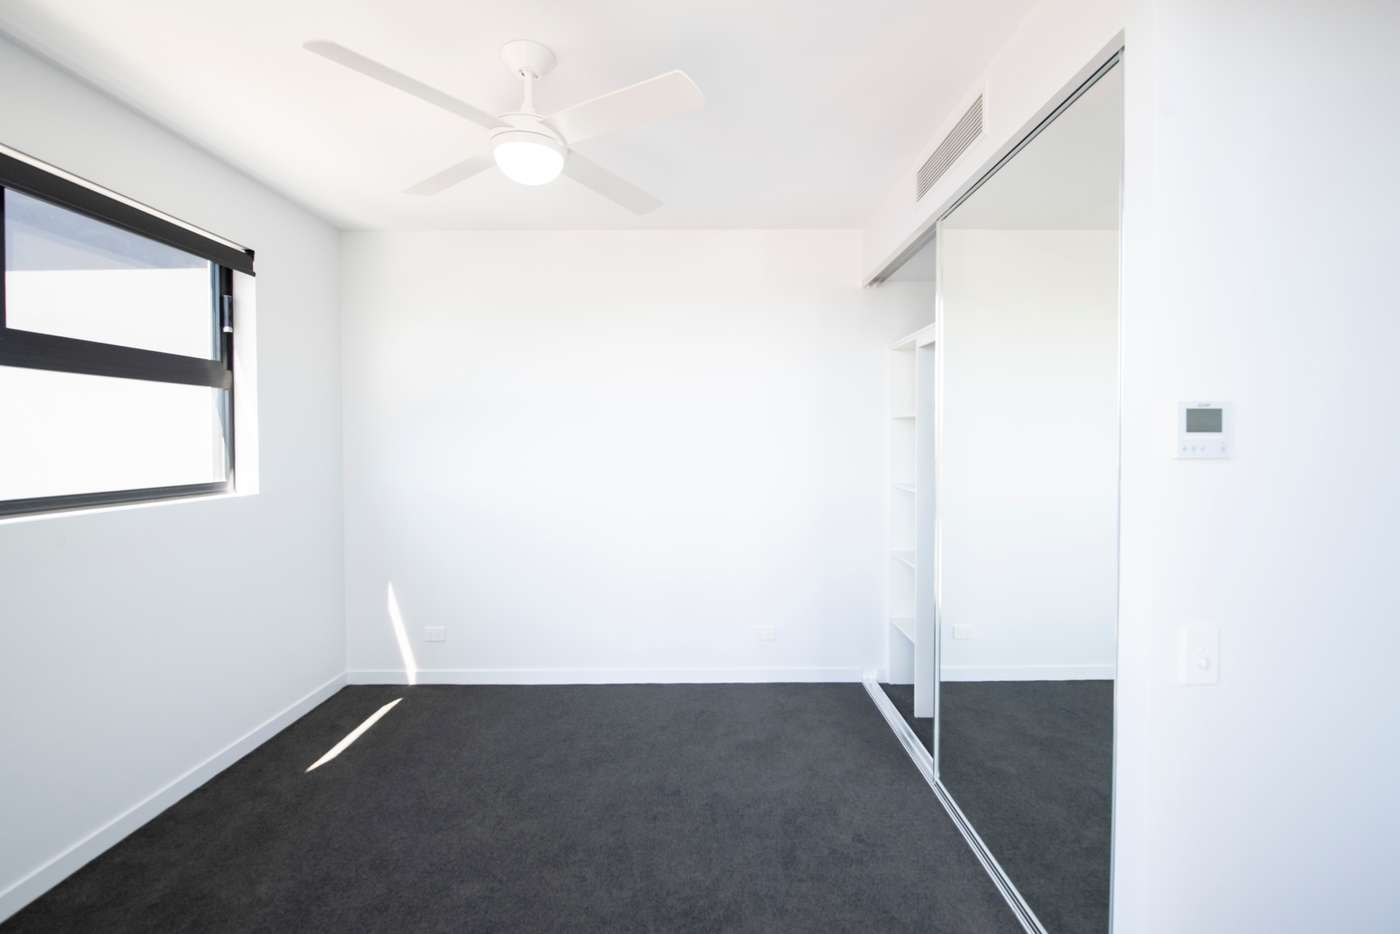 Seventh view of Homely apartment listing, 302/35-39 Lambert Road, Indooroopilly QLD 4068